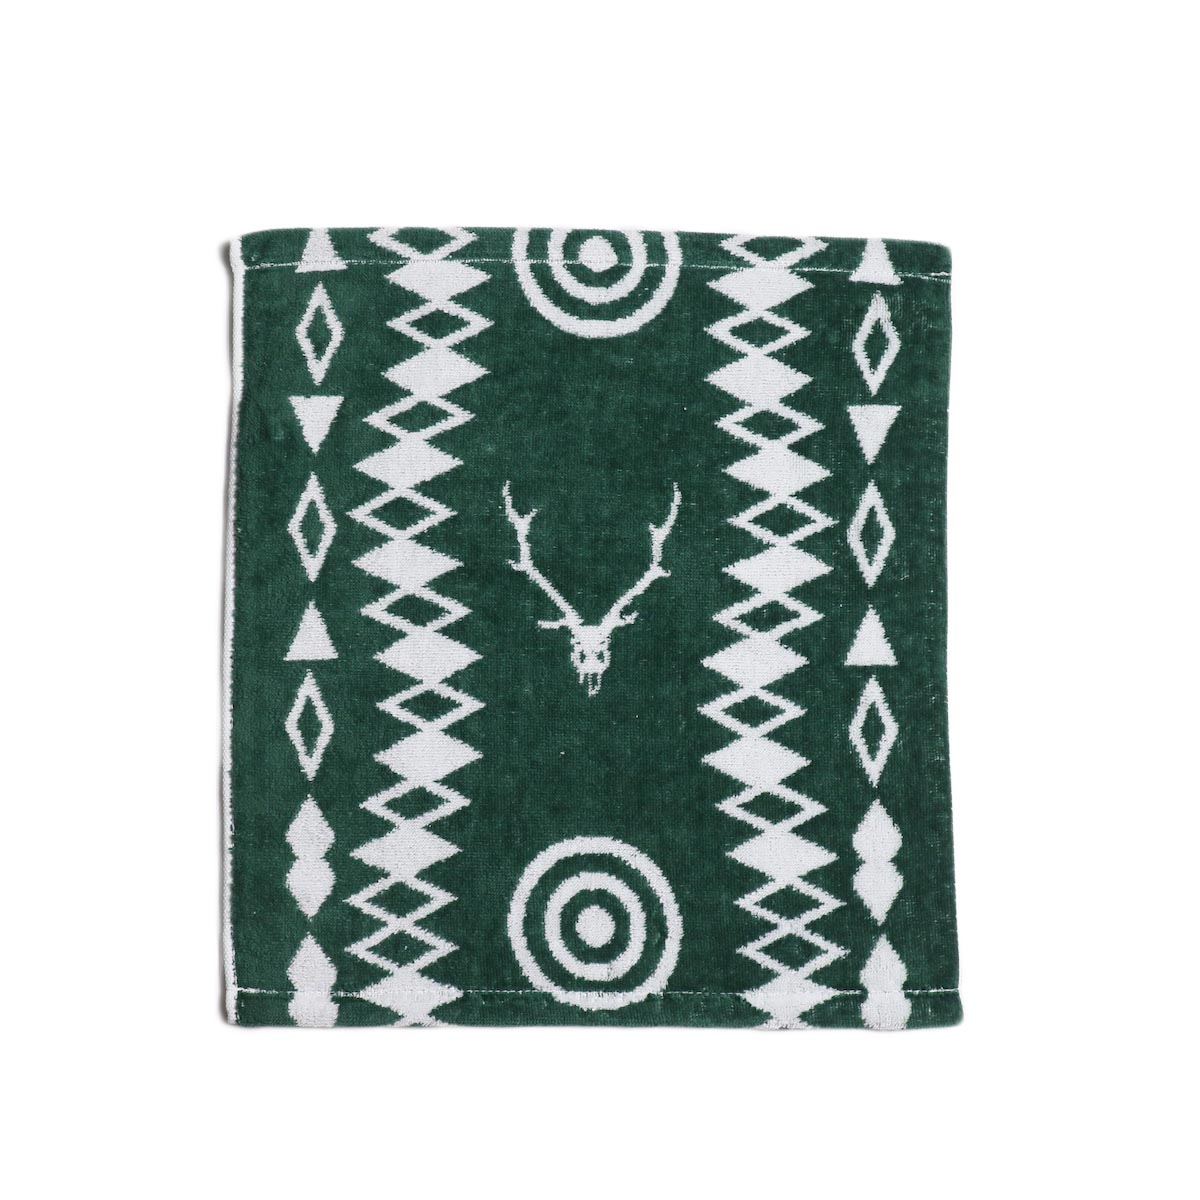 South2 West8 / Wash Towel -Cotton Jacquard (Target & Skull)